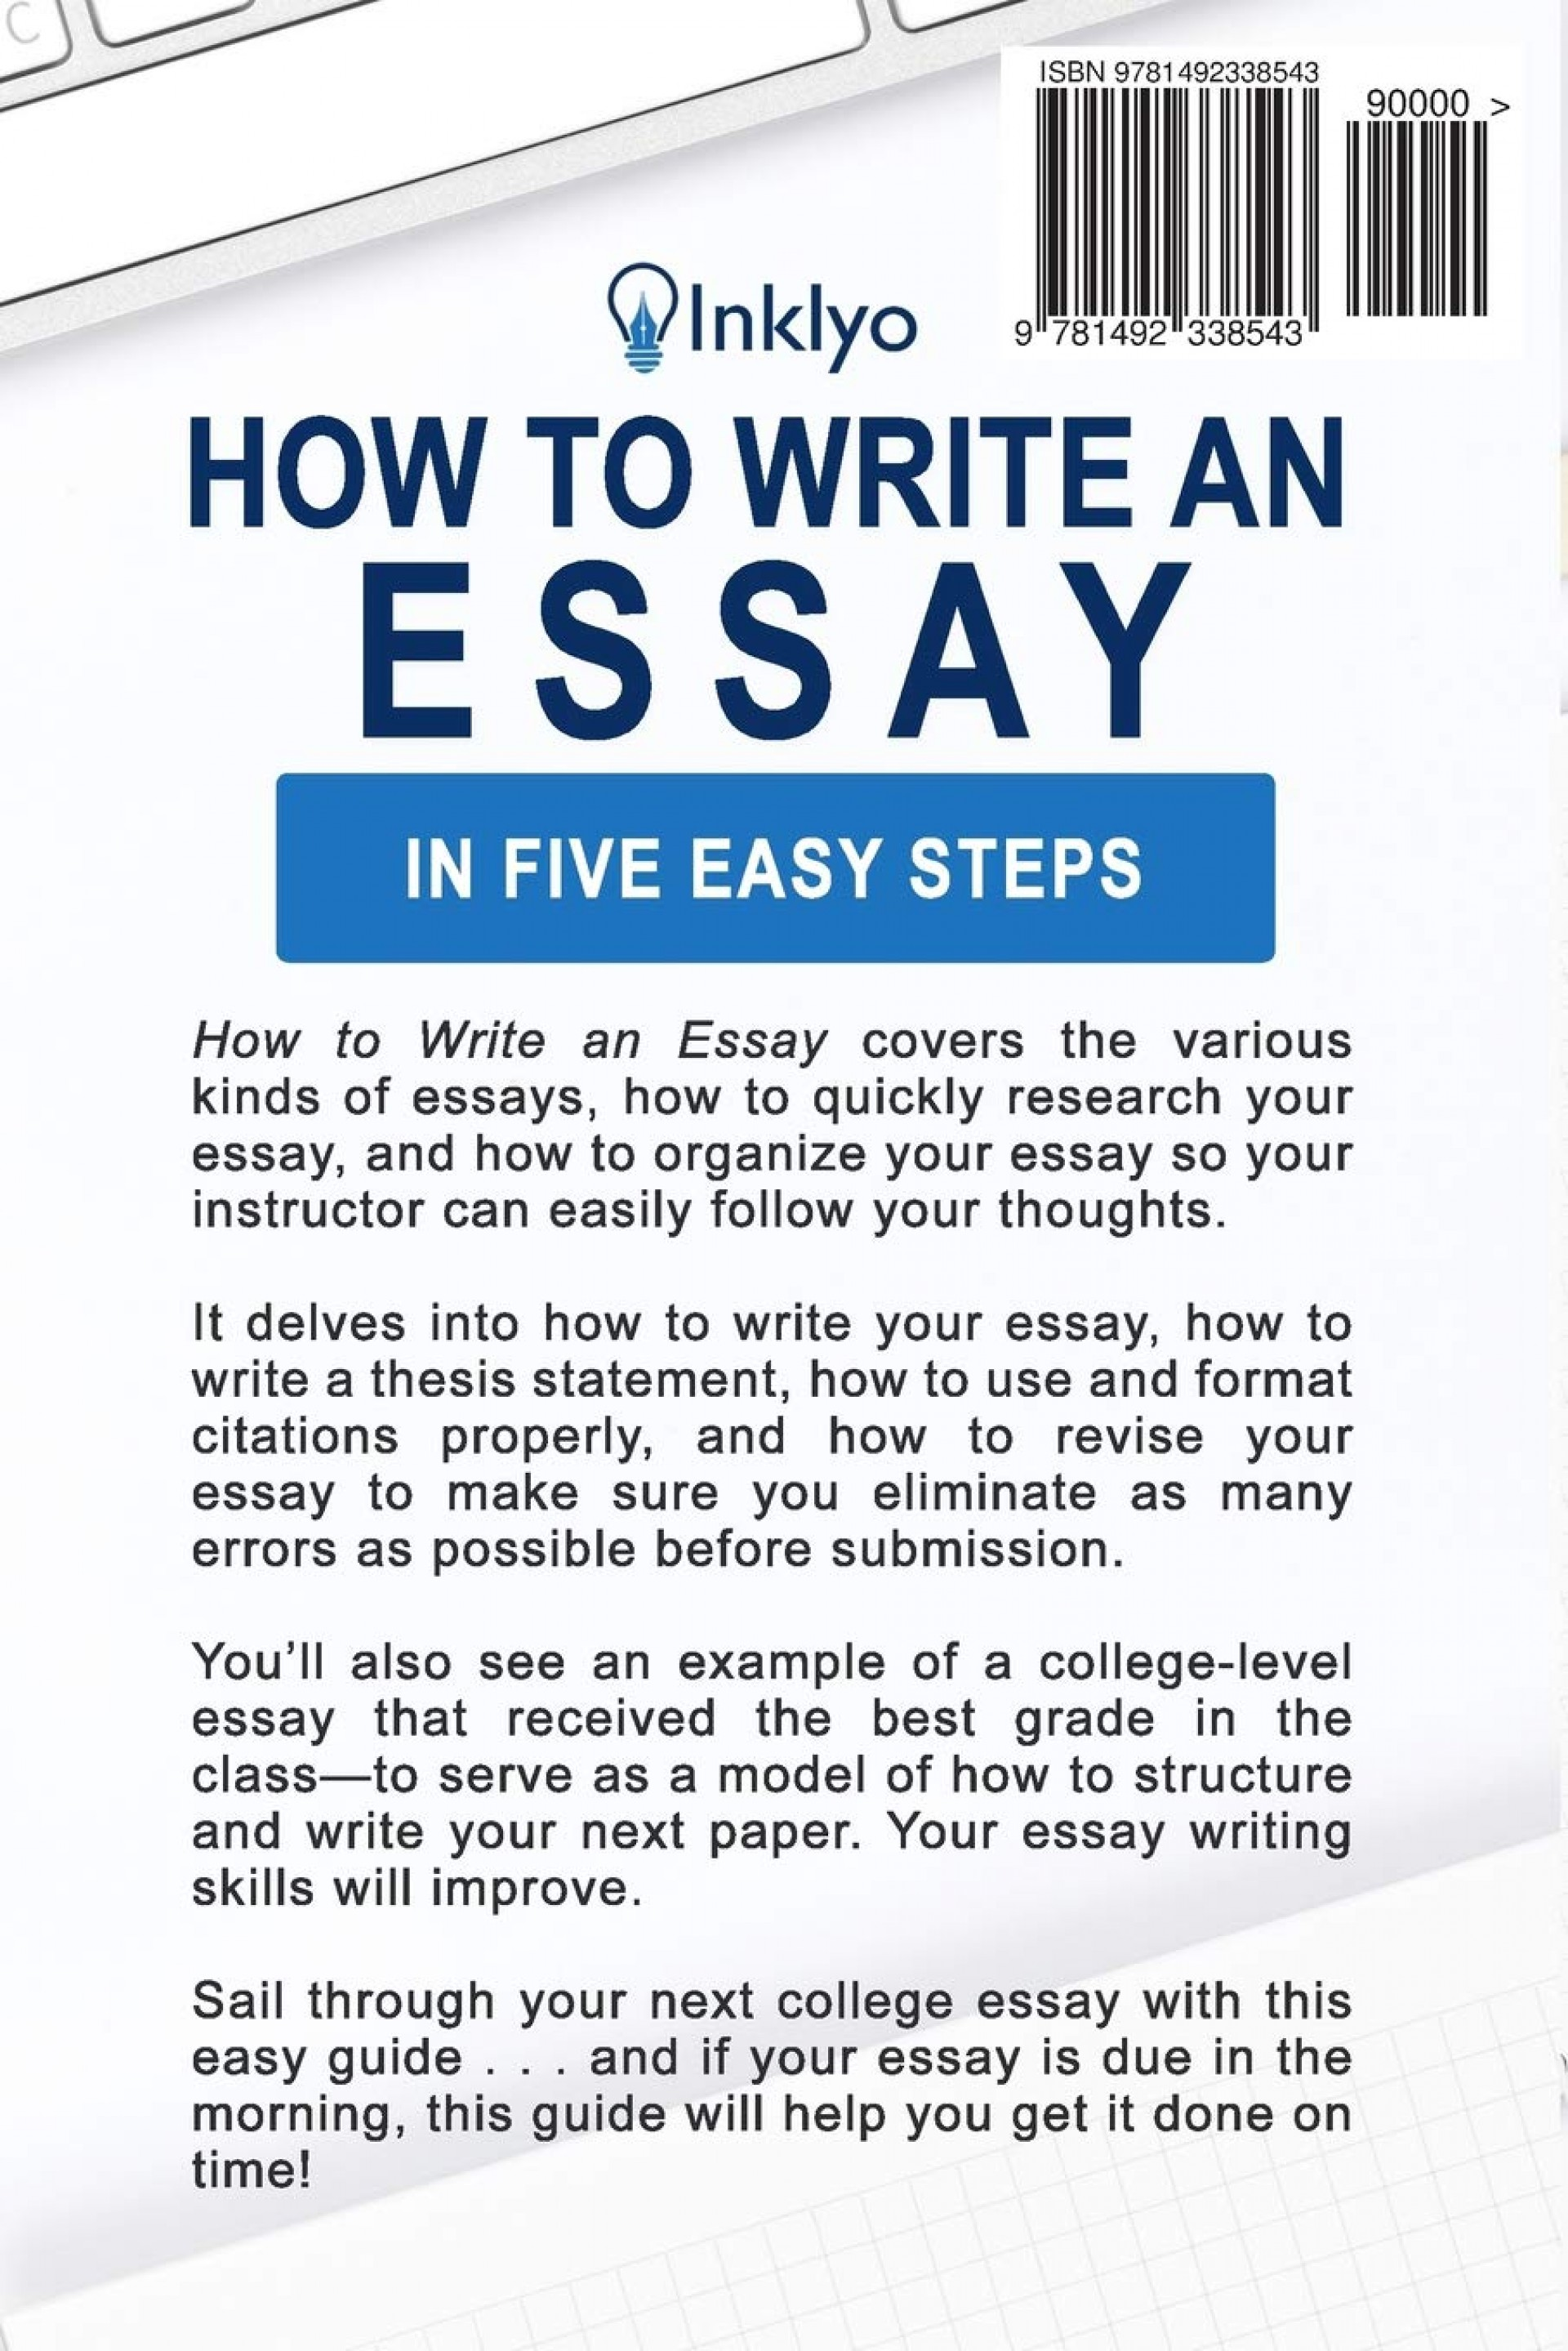 008 Essay Example 71v7ckw5pll Writing Best An Written Essays In Apa Format For College Application Academic Introduction 1920